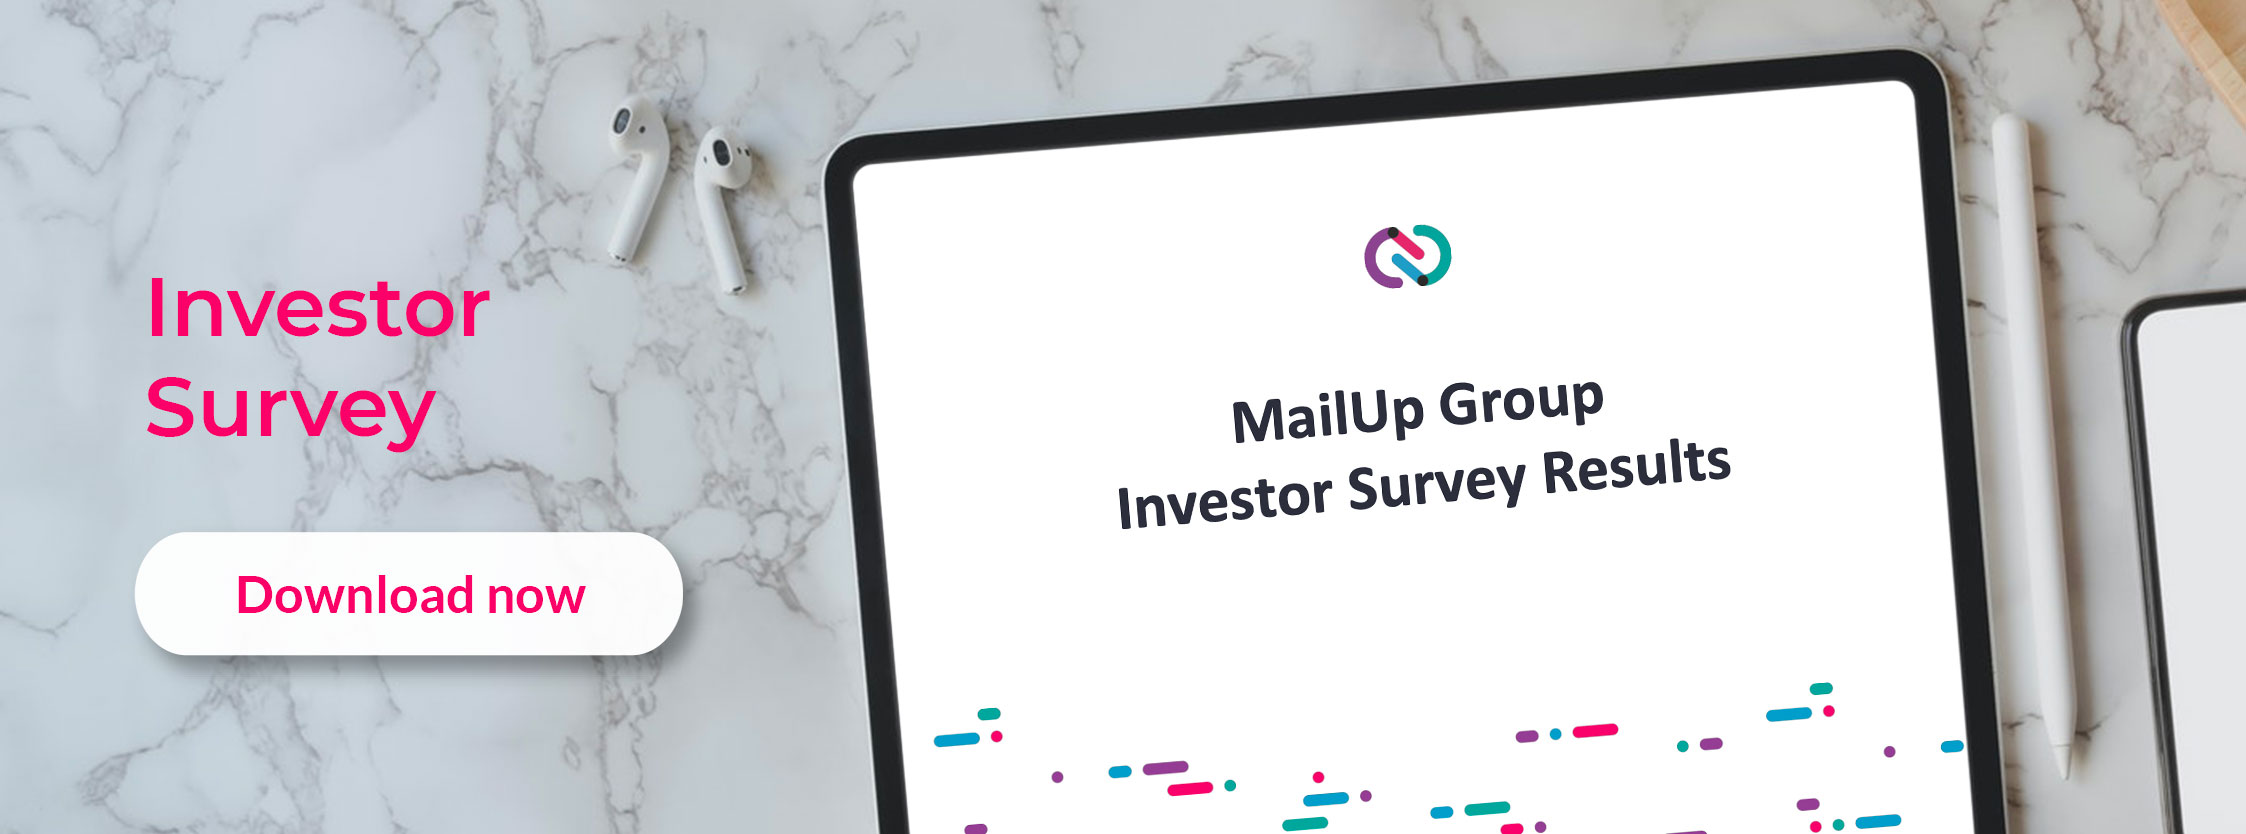 Download the Investor Survey results